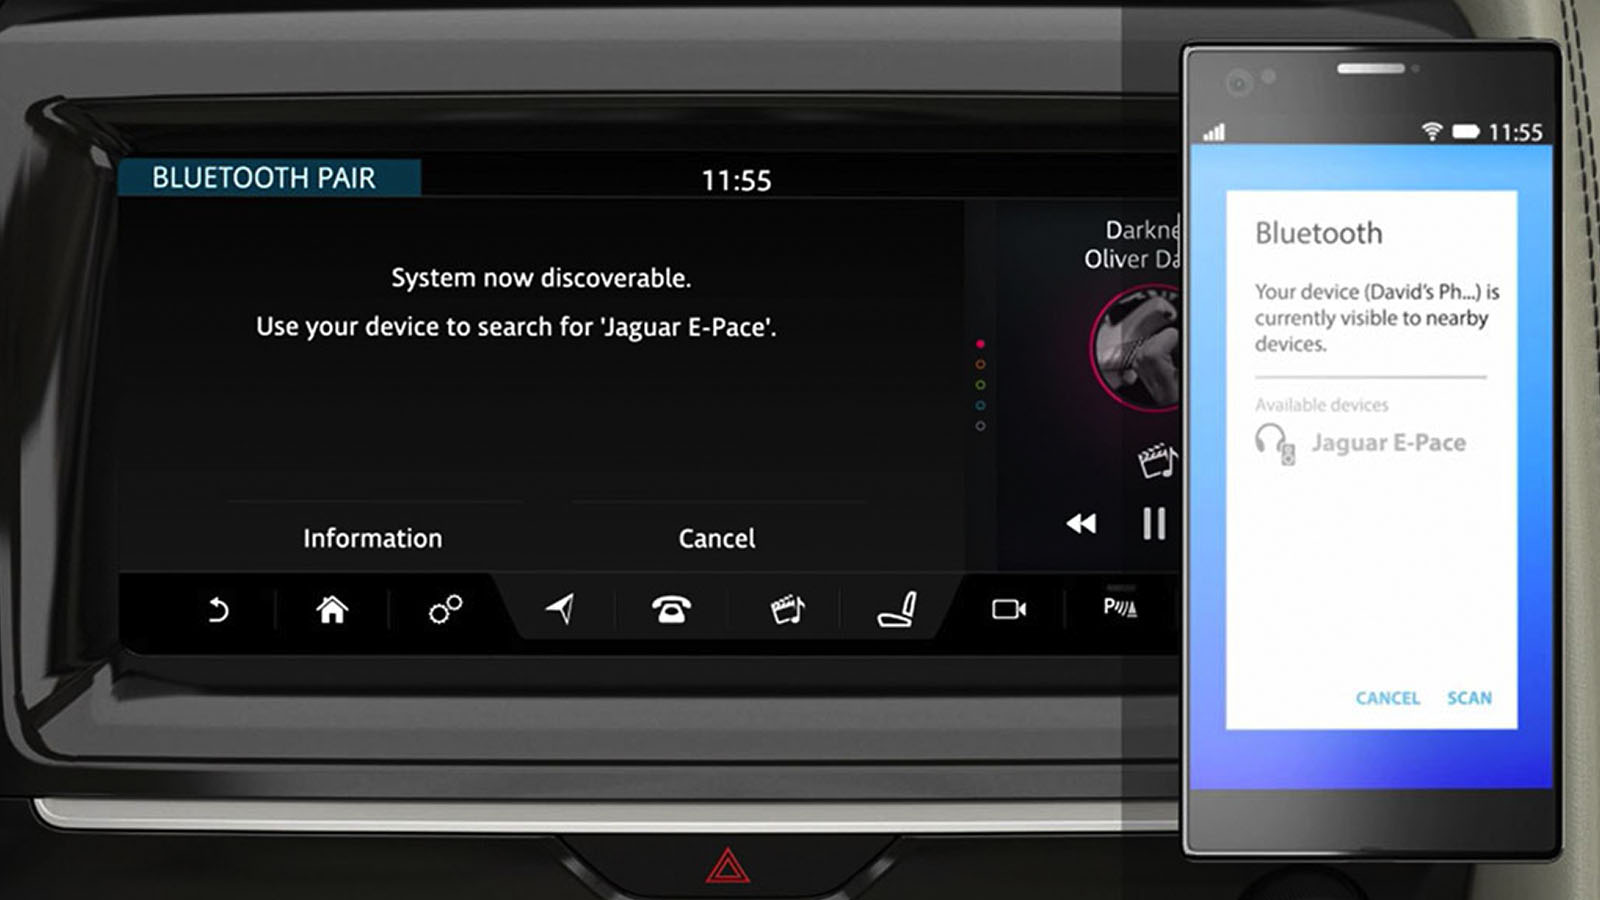 IMG_WRAPPER_Gallery-Asset_05-Touch-Pro-In-Car-Bluetooth_Device-Desktop_680x450.jpg